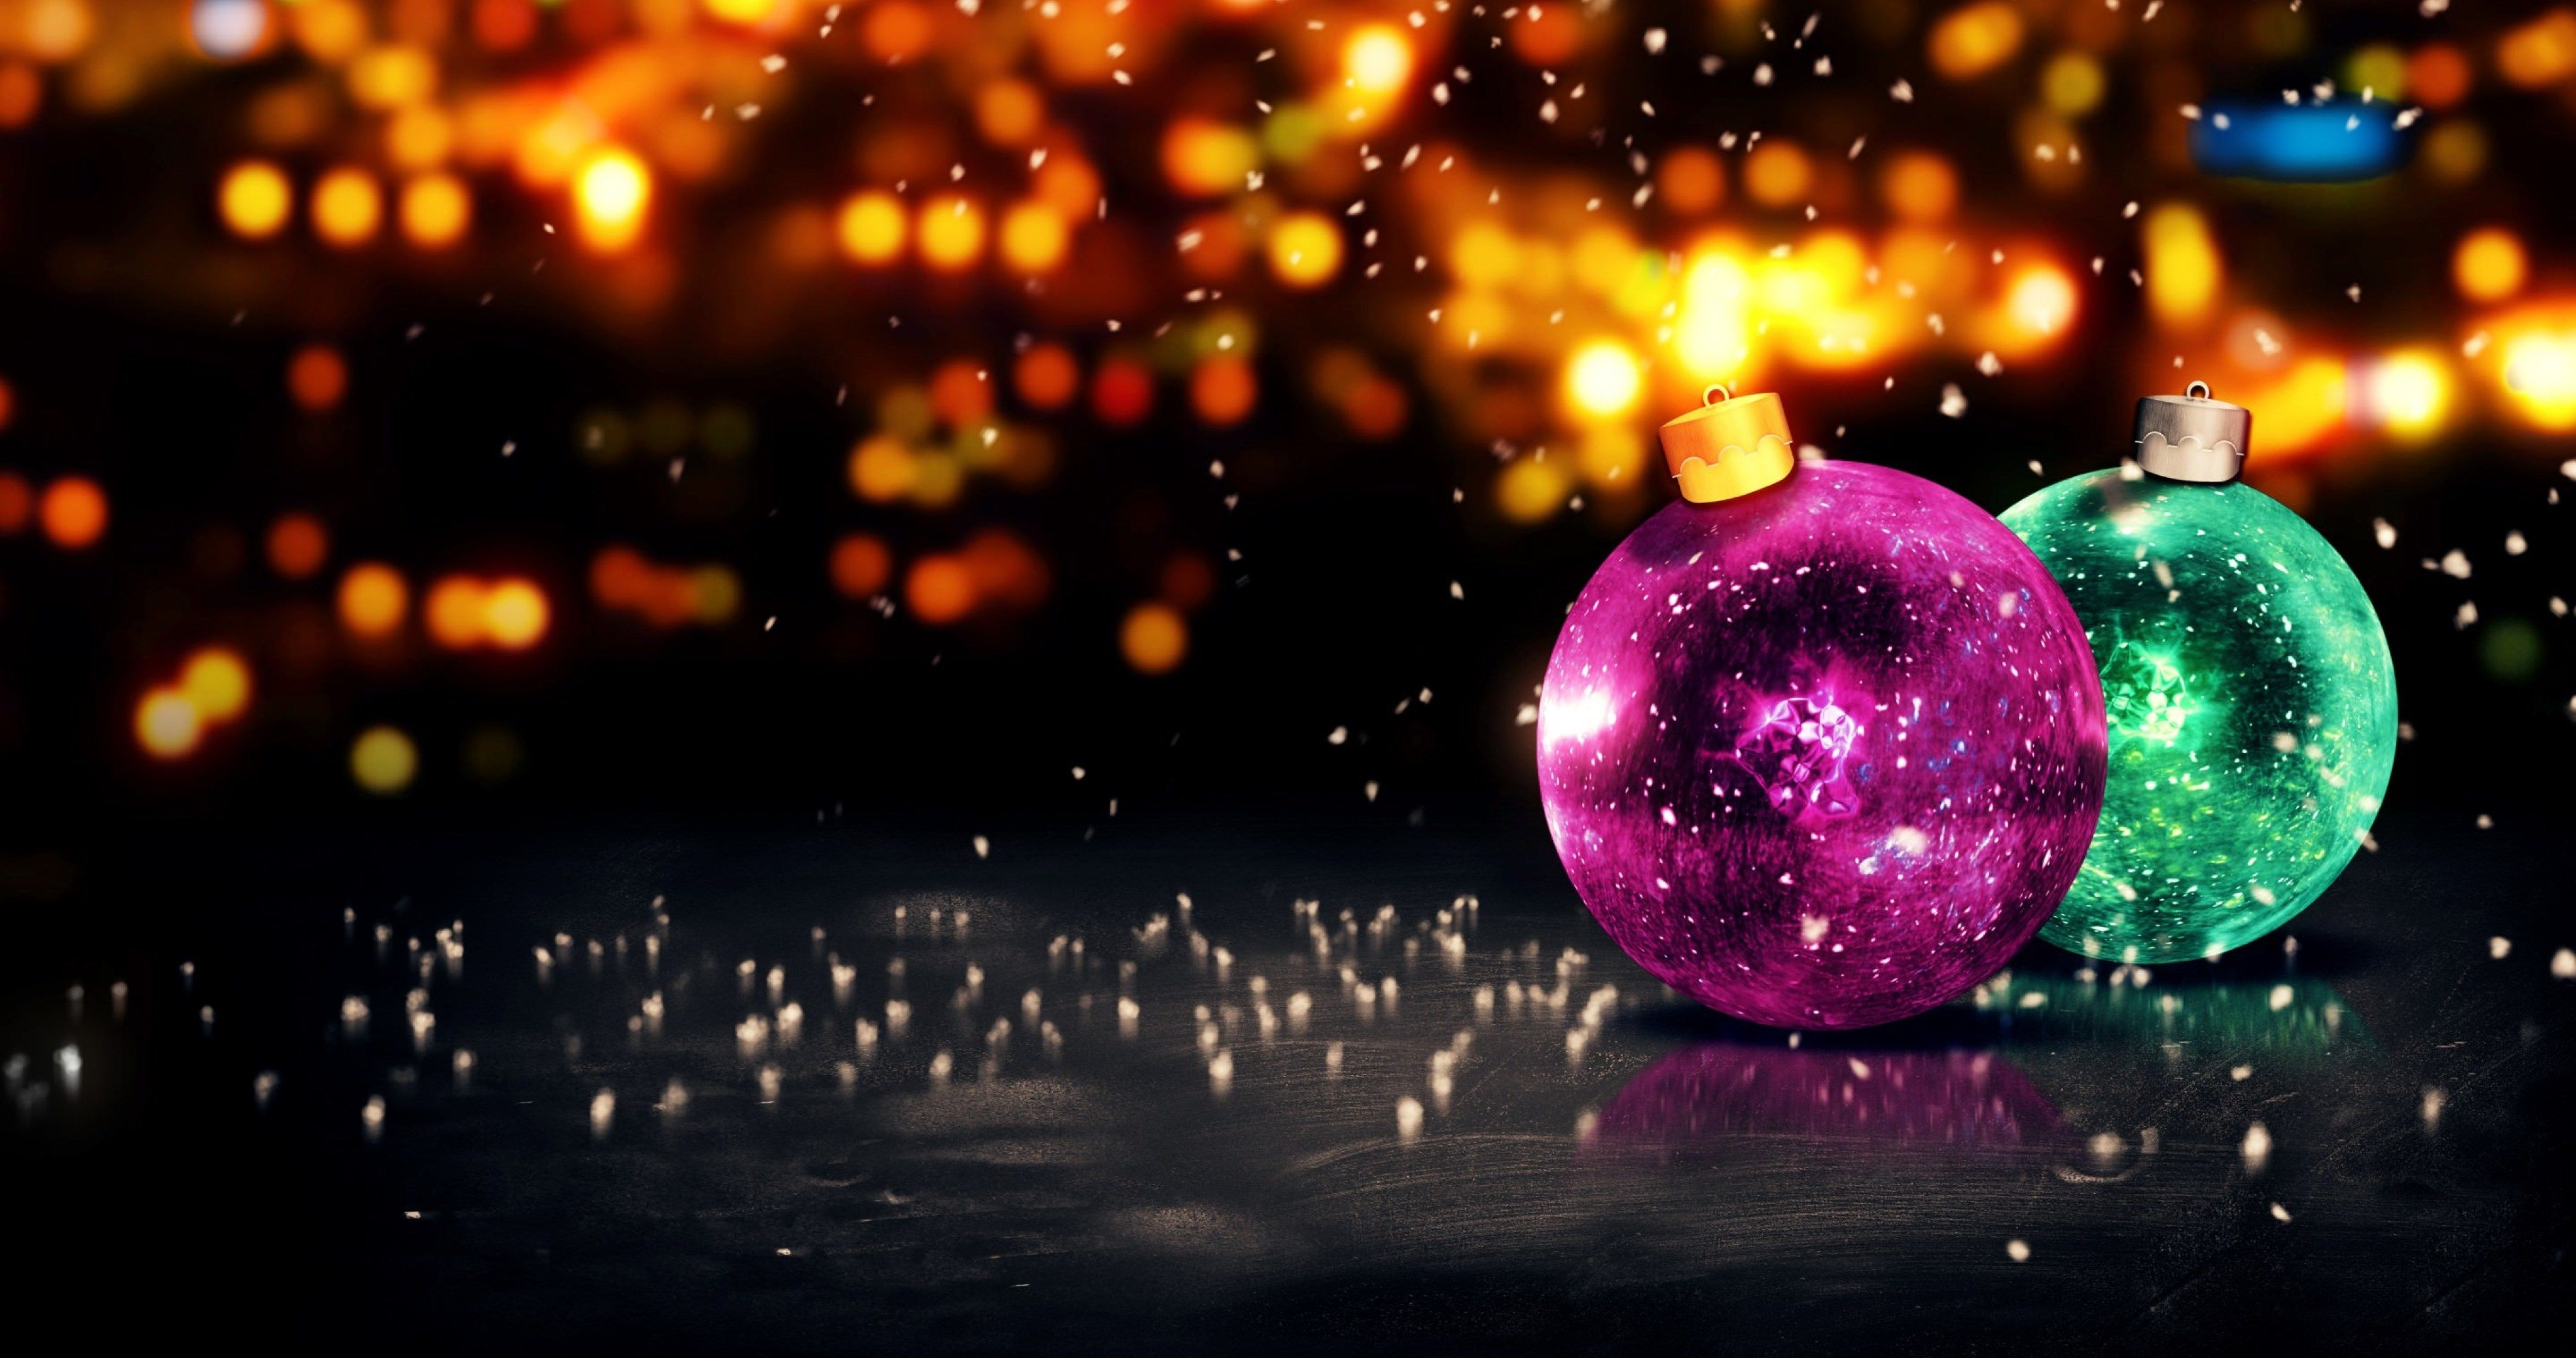 merry christmas balls wallpaper 4k ultra hd wallpaper happy new year wishes new year wishes